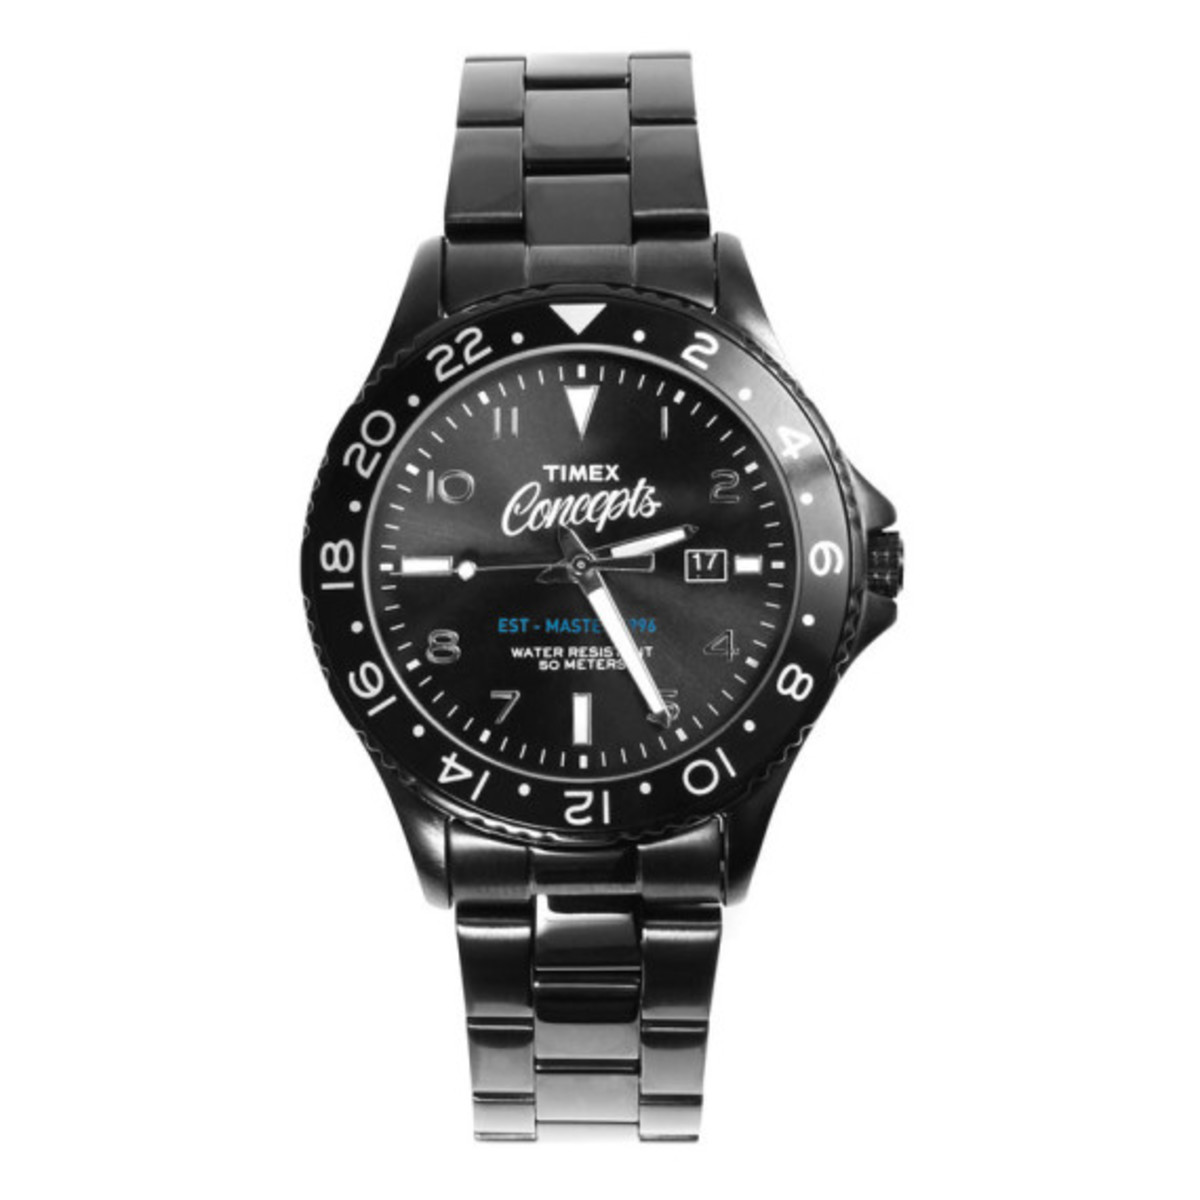 concepts-timex-watch-01